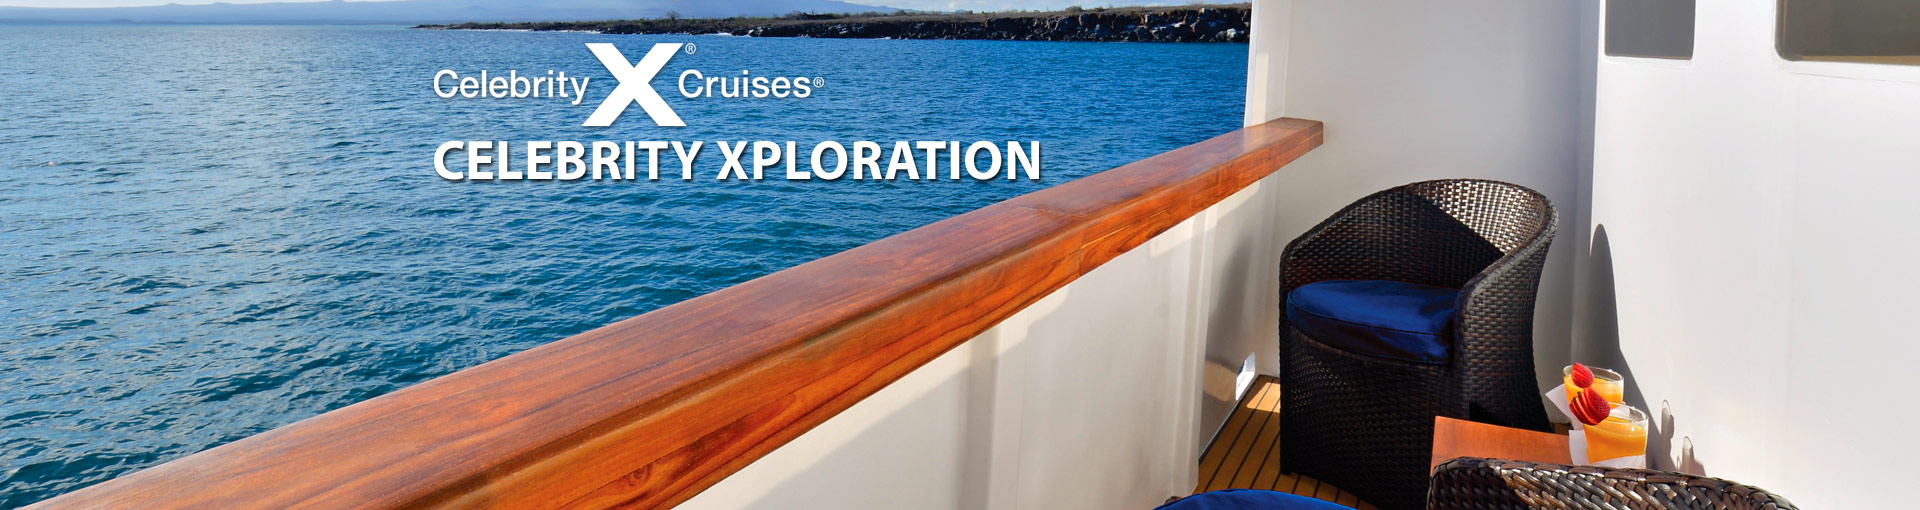 Celebrity Cruises Xploration Ship